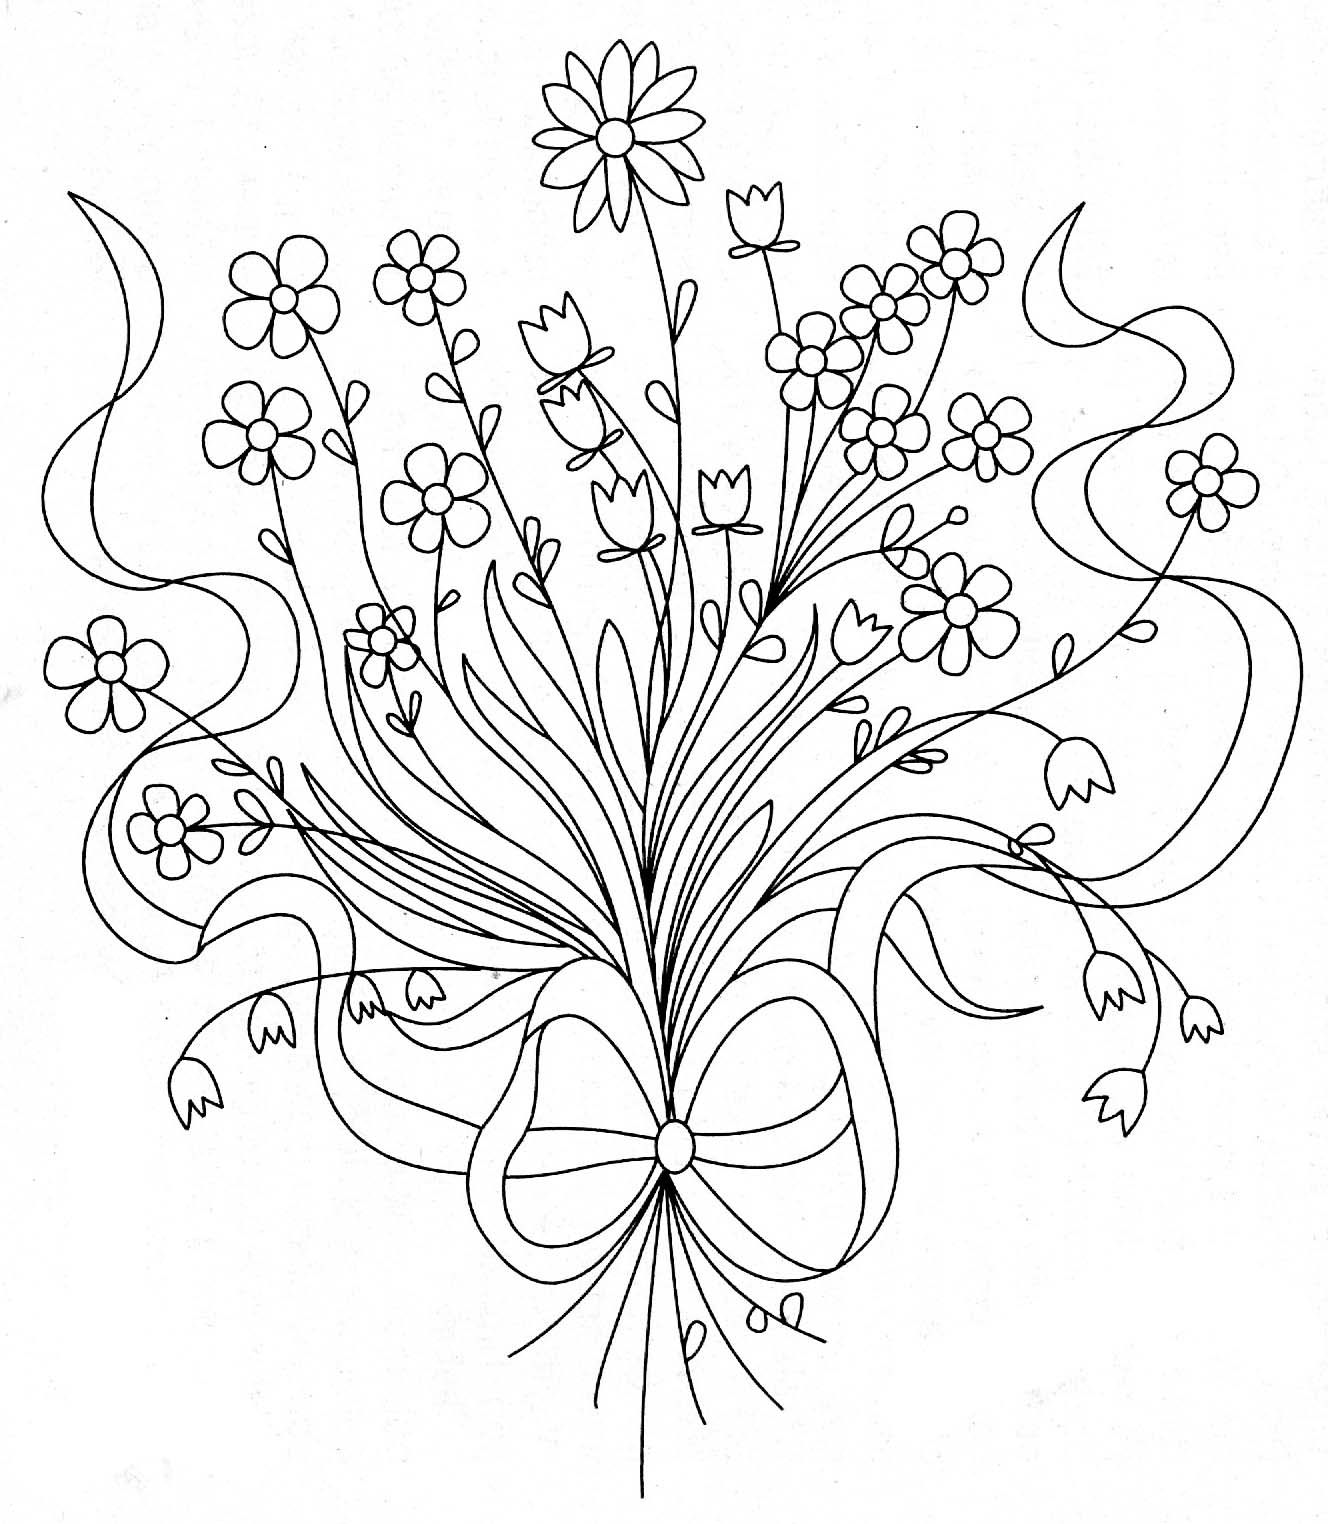 Embroidery Pattern | Embroidery: Patterns 2 | Pinterest | Embroidery ...